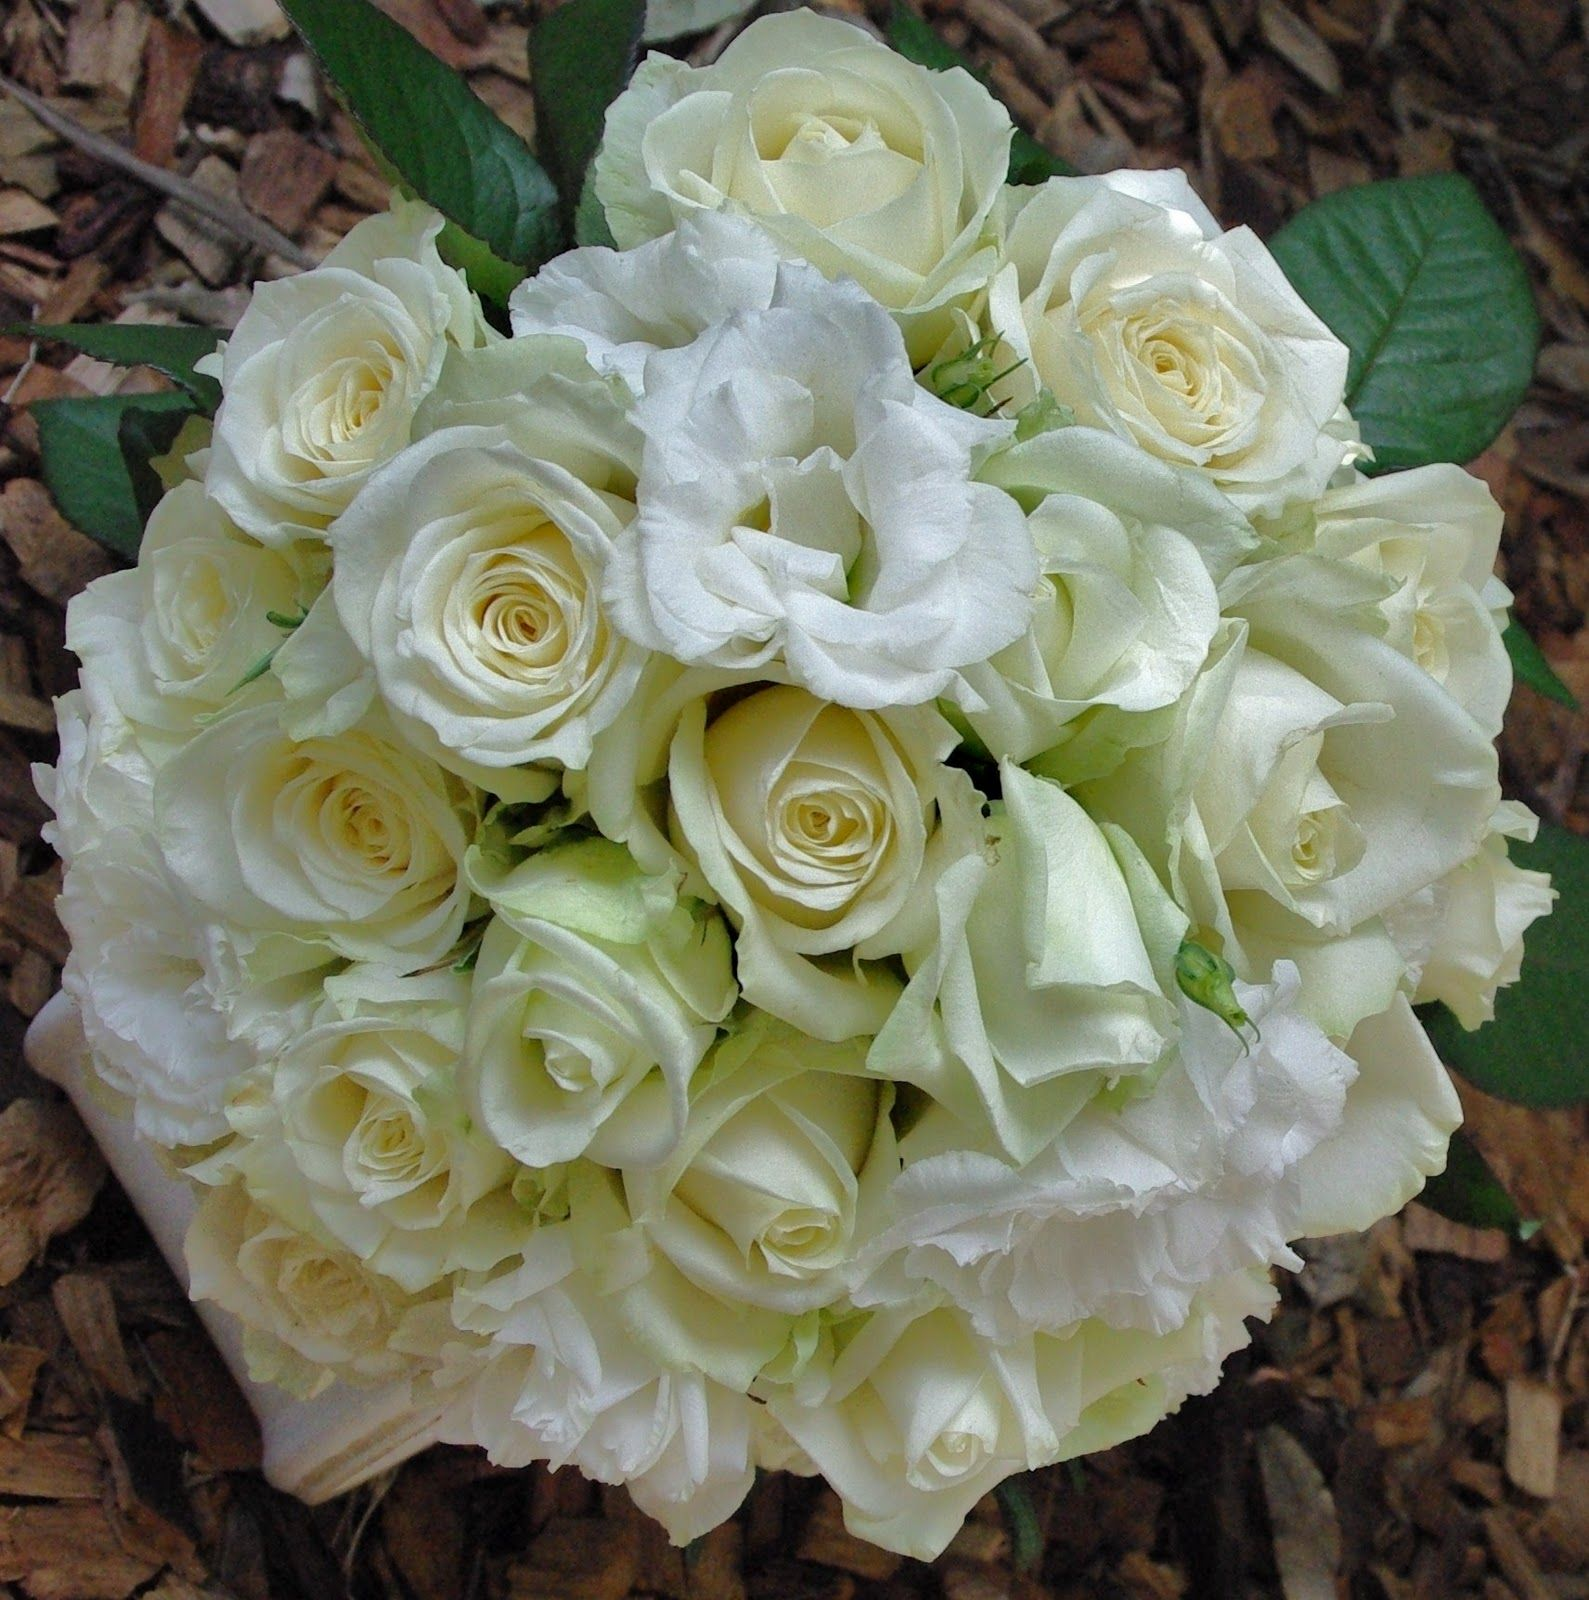 Crazyflorist A Bunch Of 25 White Roses For A Unique Gesture For 5